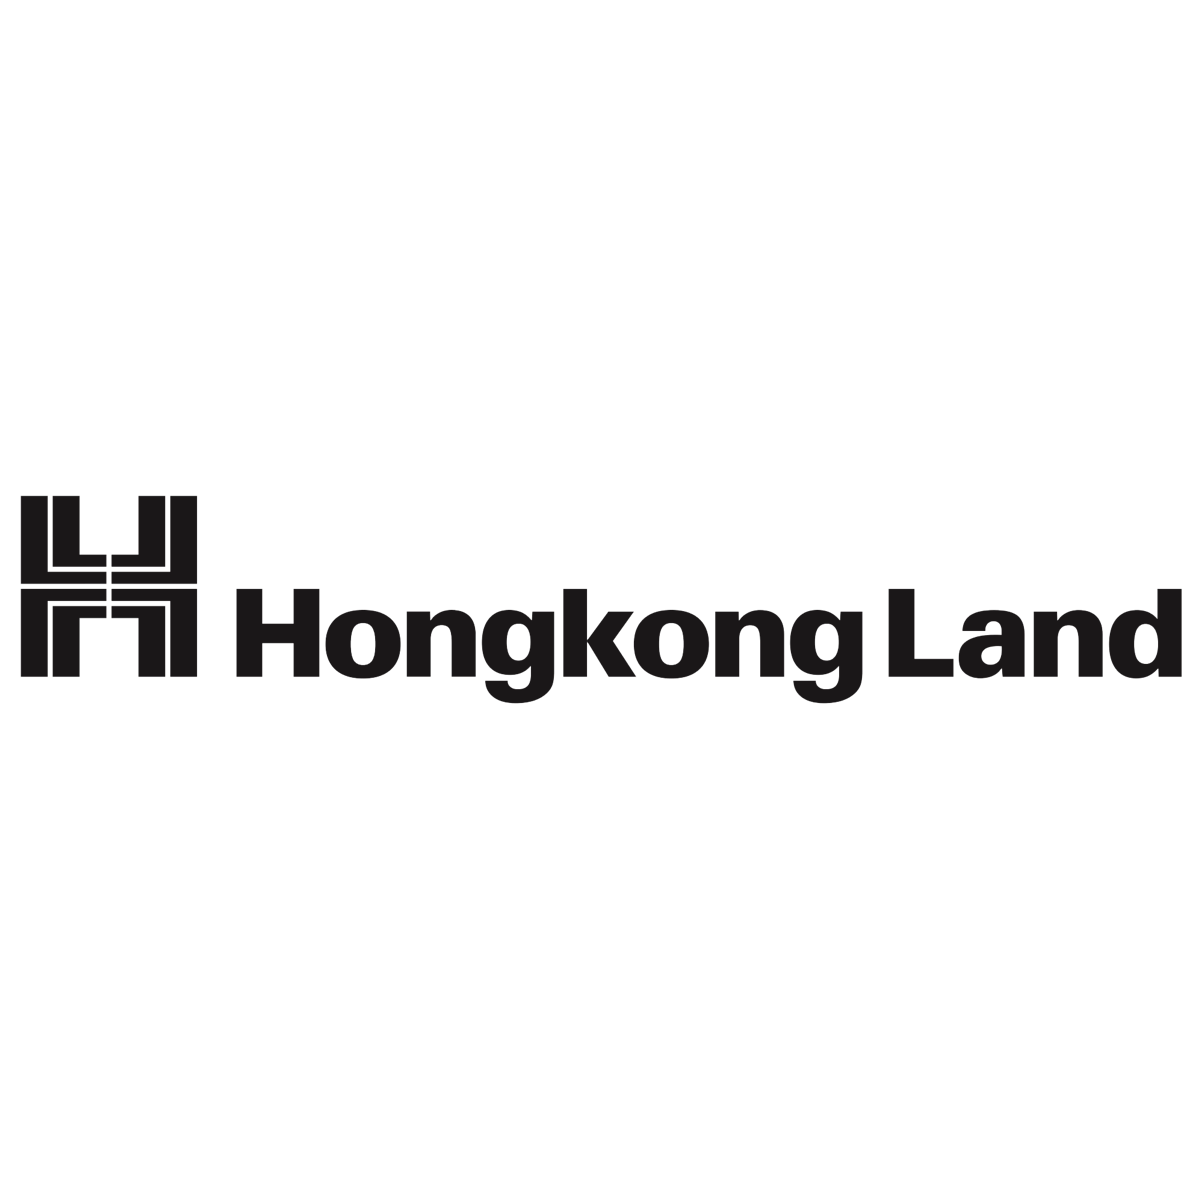 Hongkong Land (HKL SP) - DBS Vickers 2017-08-04: Boosted By Robust Residential Sales